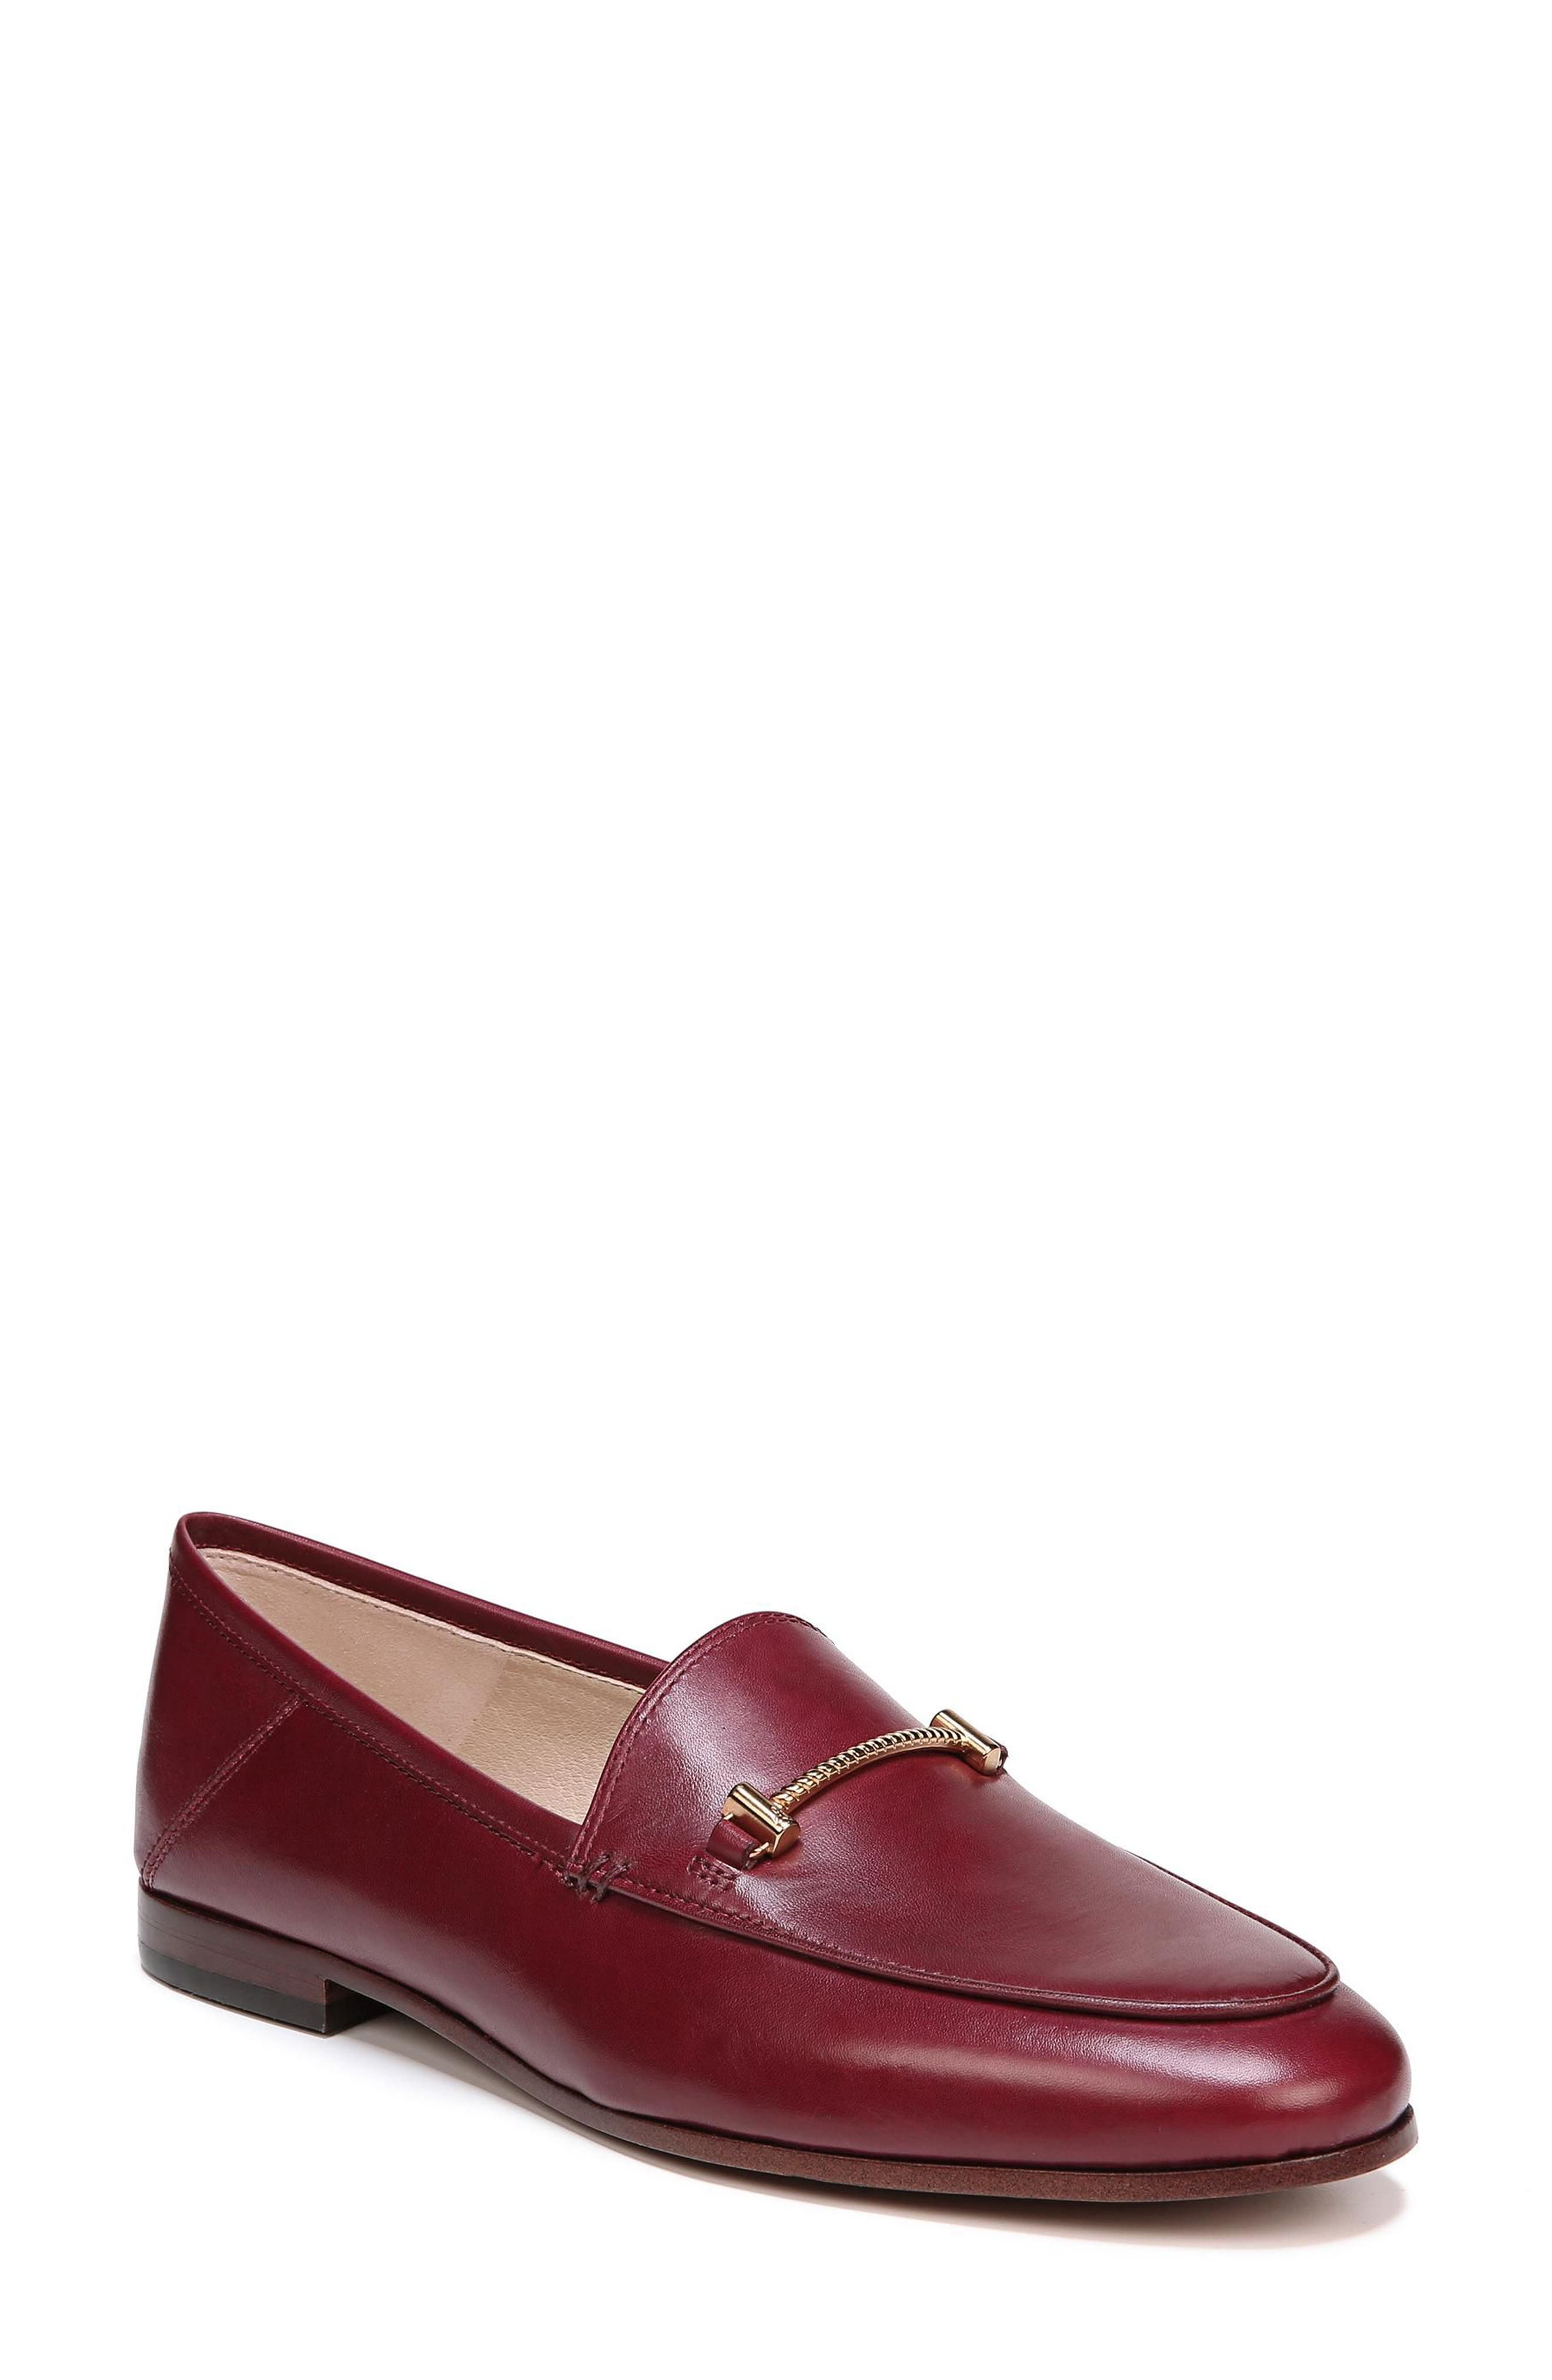 Lior Loafer,                         Main,                         color, BEET RED LEATHER